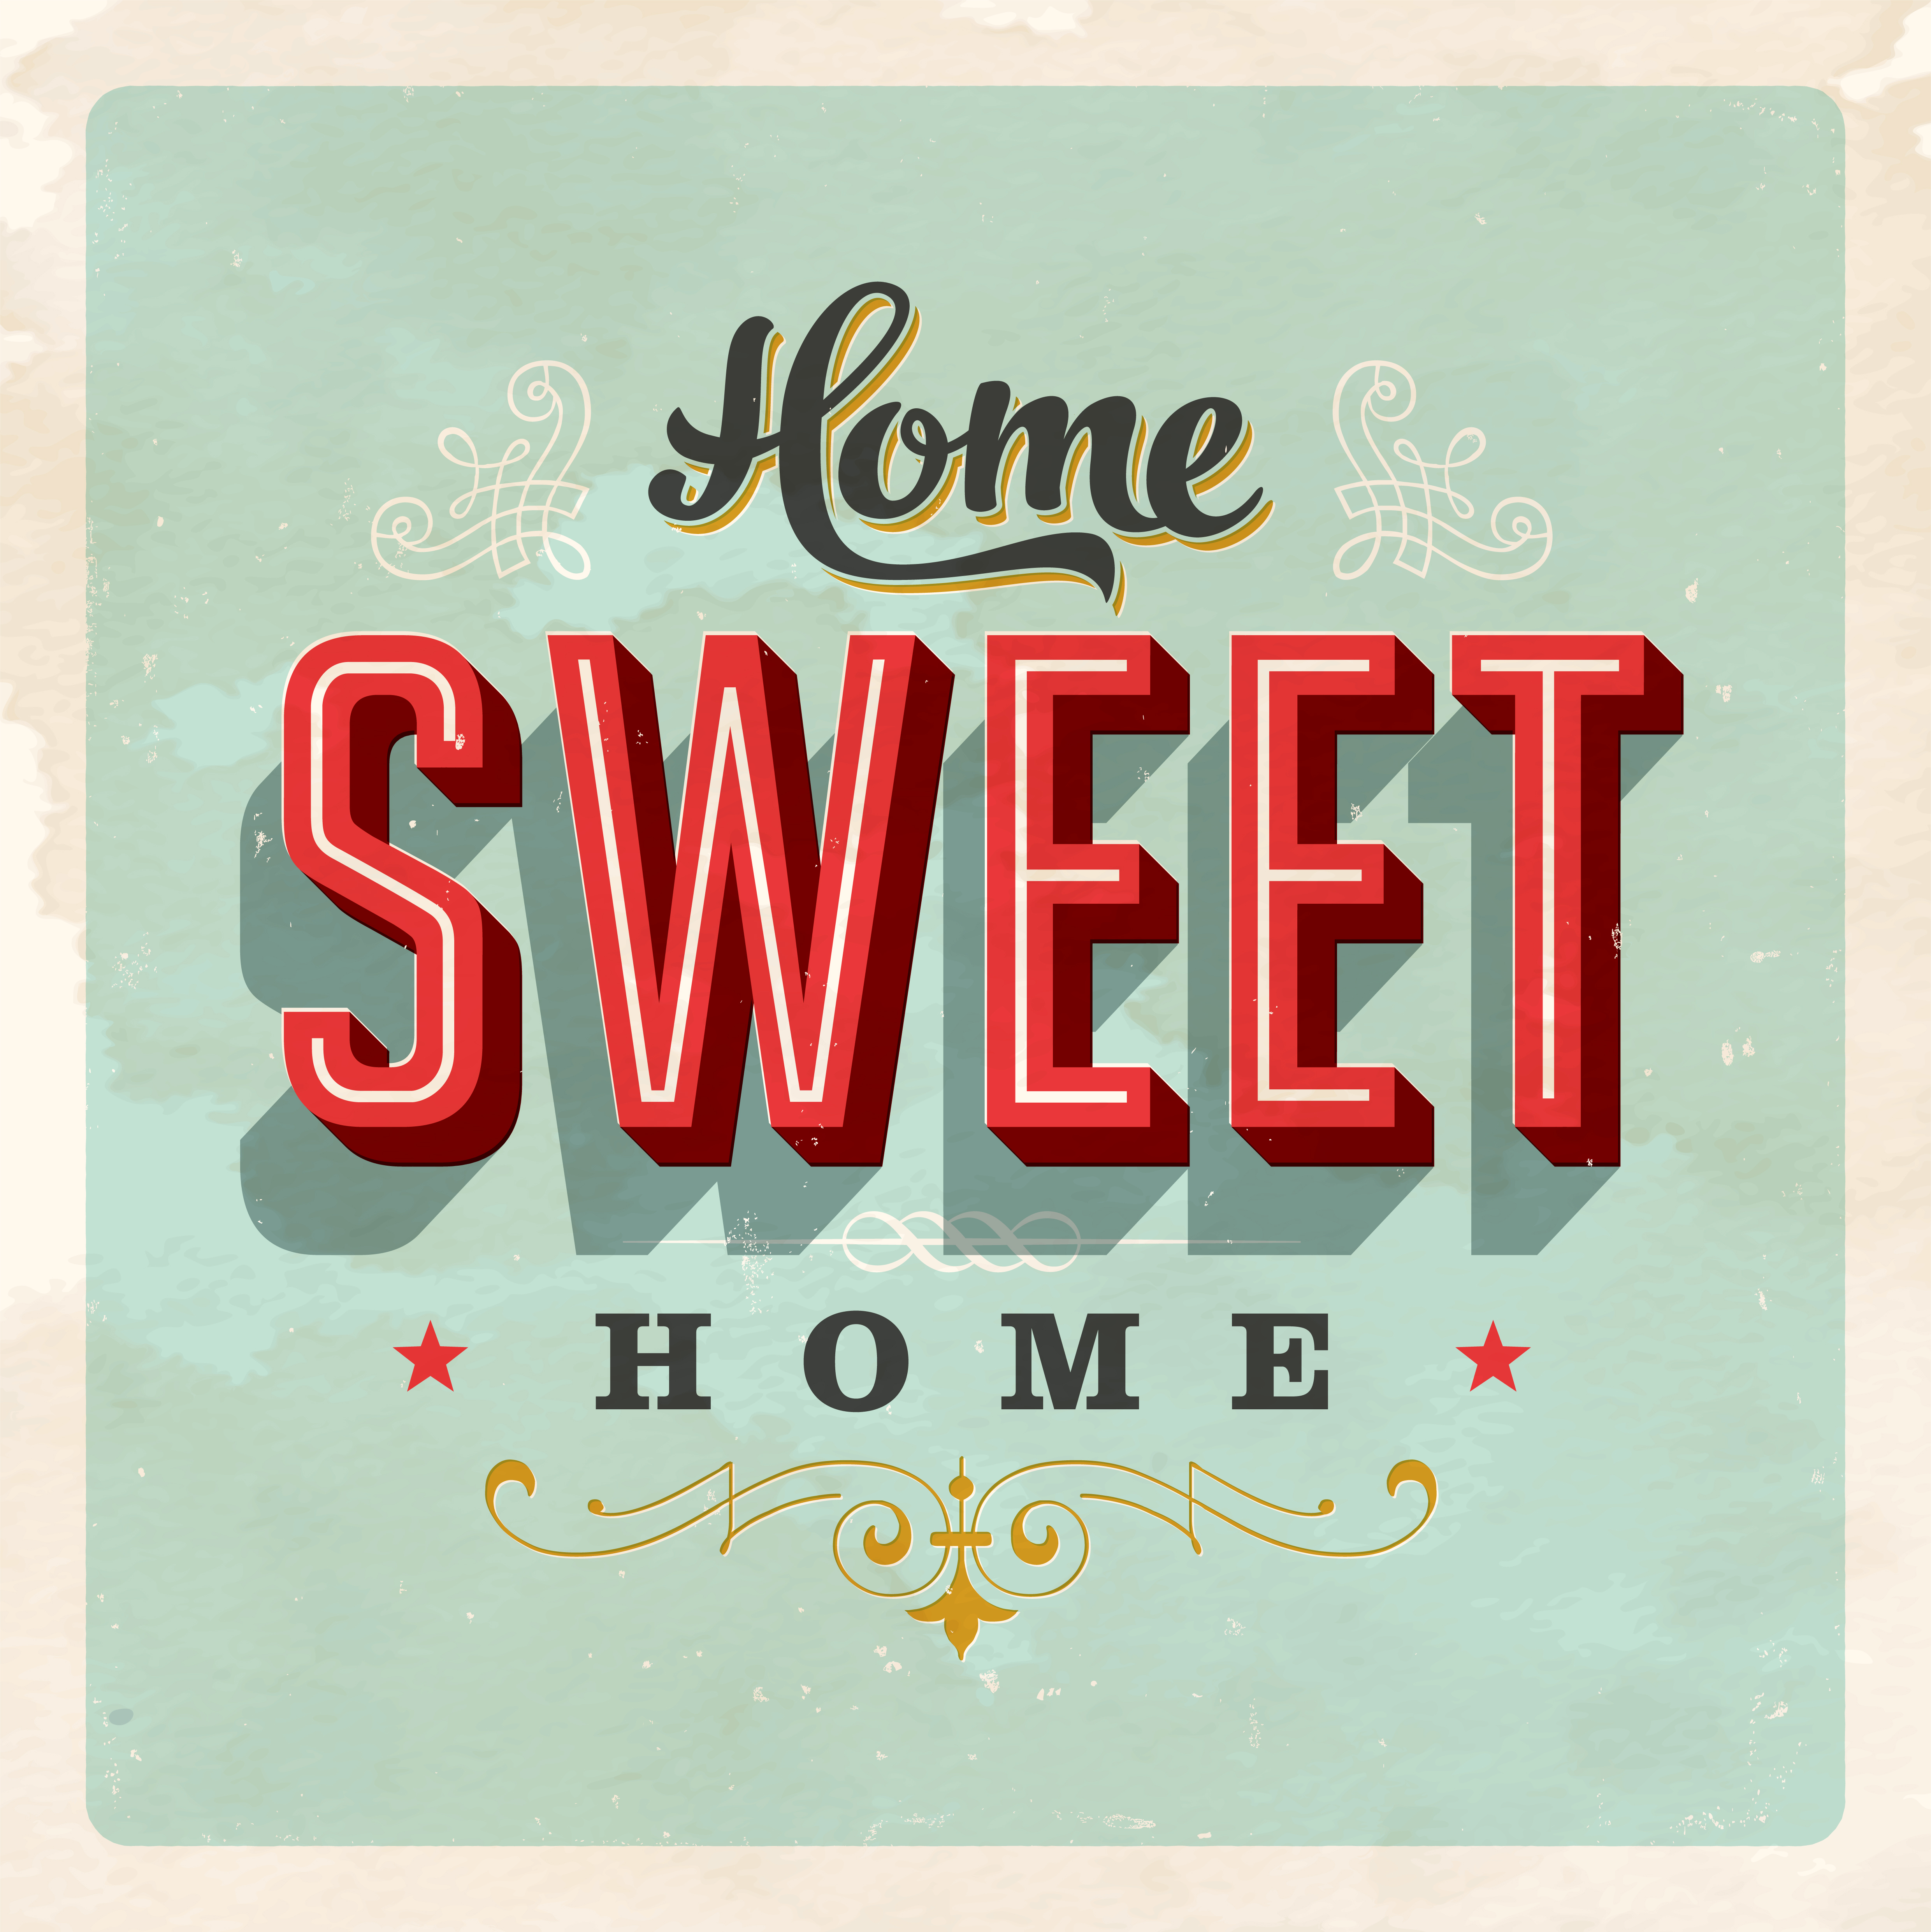 home sweet home shutterstock_118469617